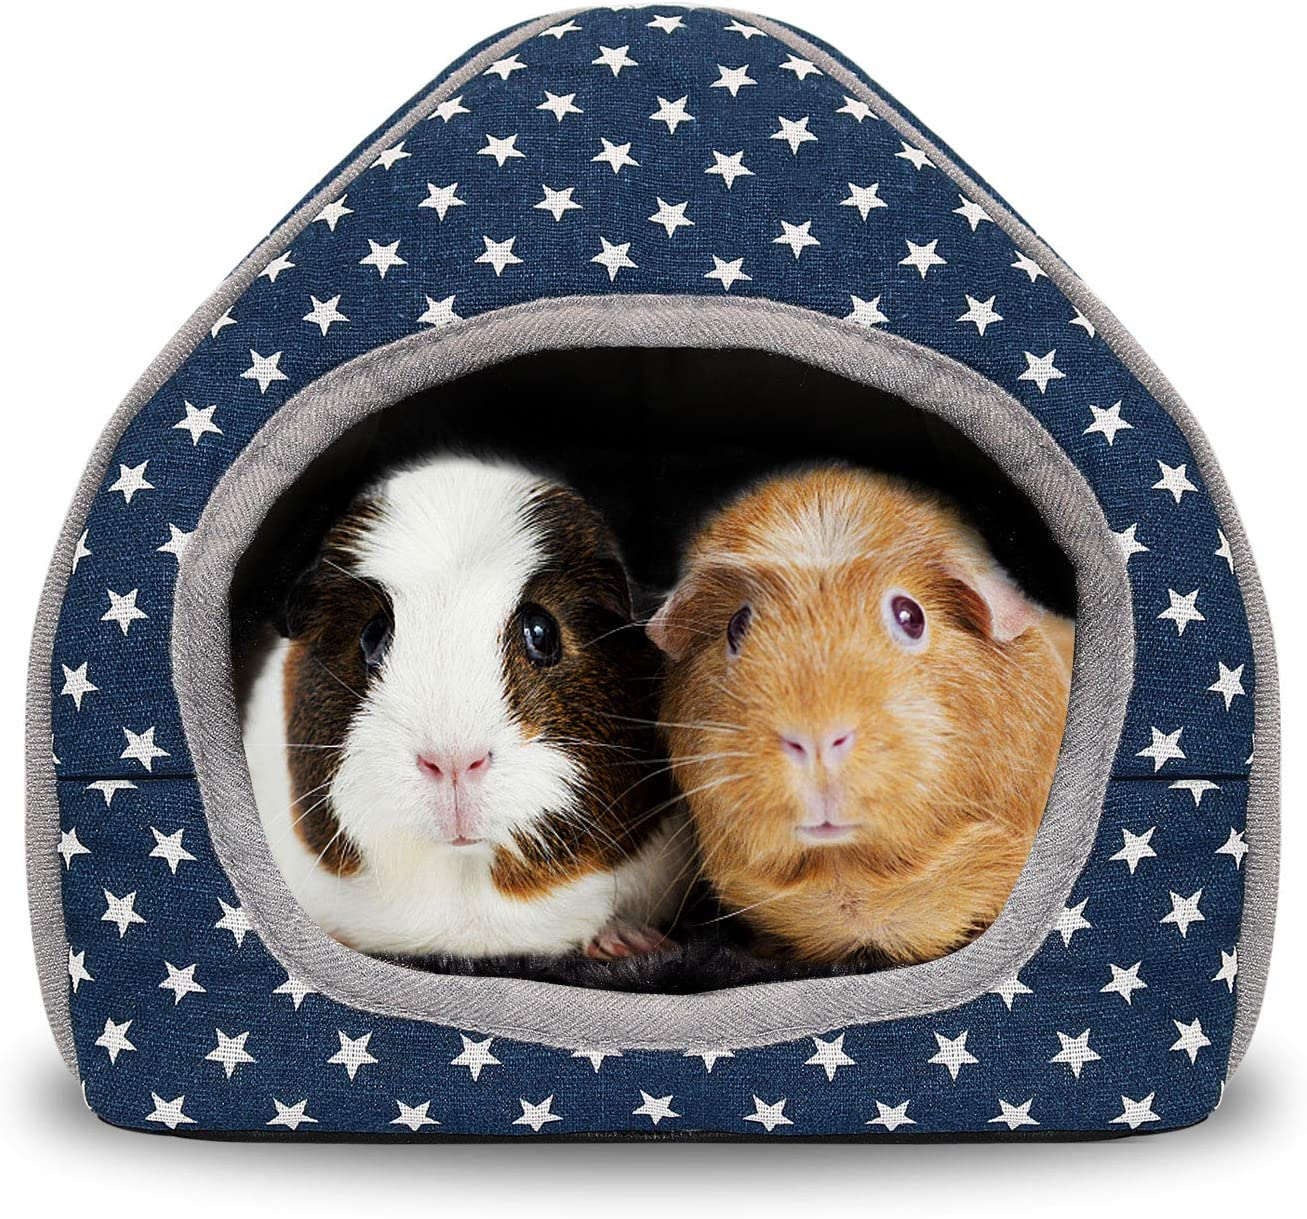 BWOGUE Guinea Pig Bed Cave Cozy Hamster House Large Hide-Out for Rabbit Ferret Hedgehog Chinchilla Bearded Dragon Winter Nest Hamster Accessories